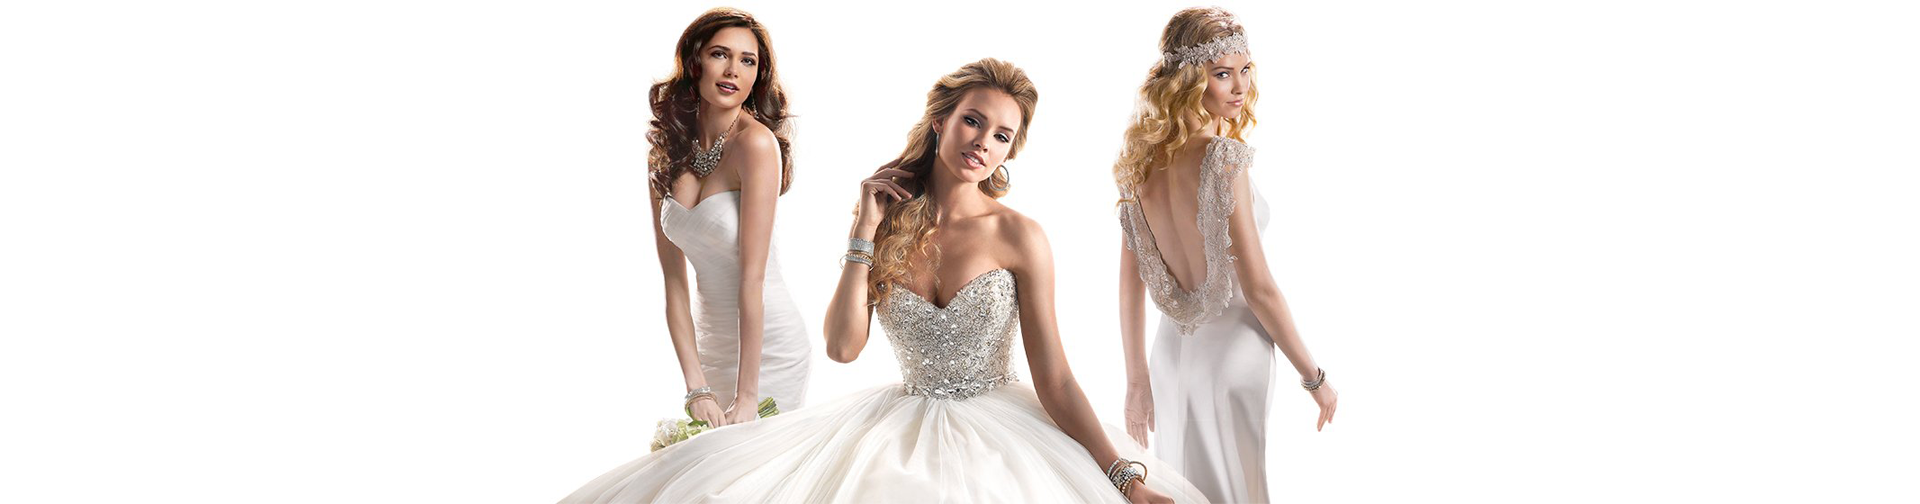 Austin bridal texas bridal shop austin texas bridal shop for Plus size wedding dresses austin tx